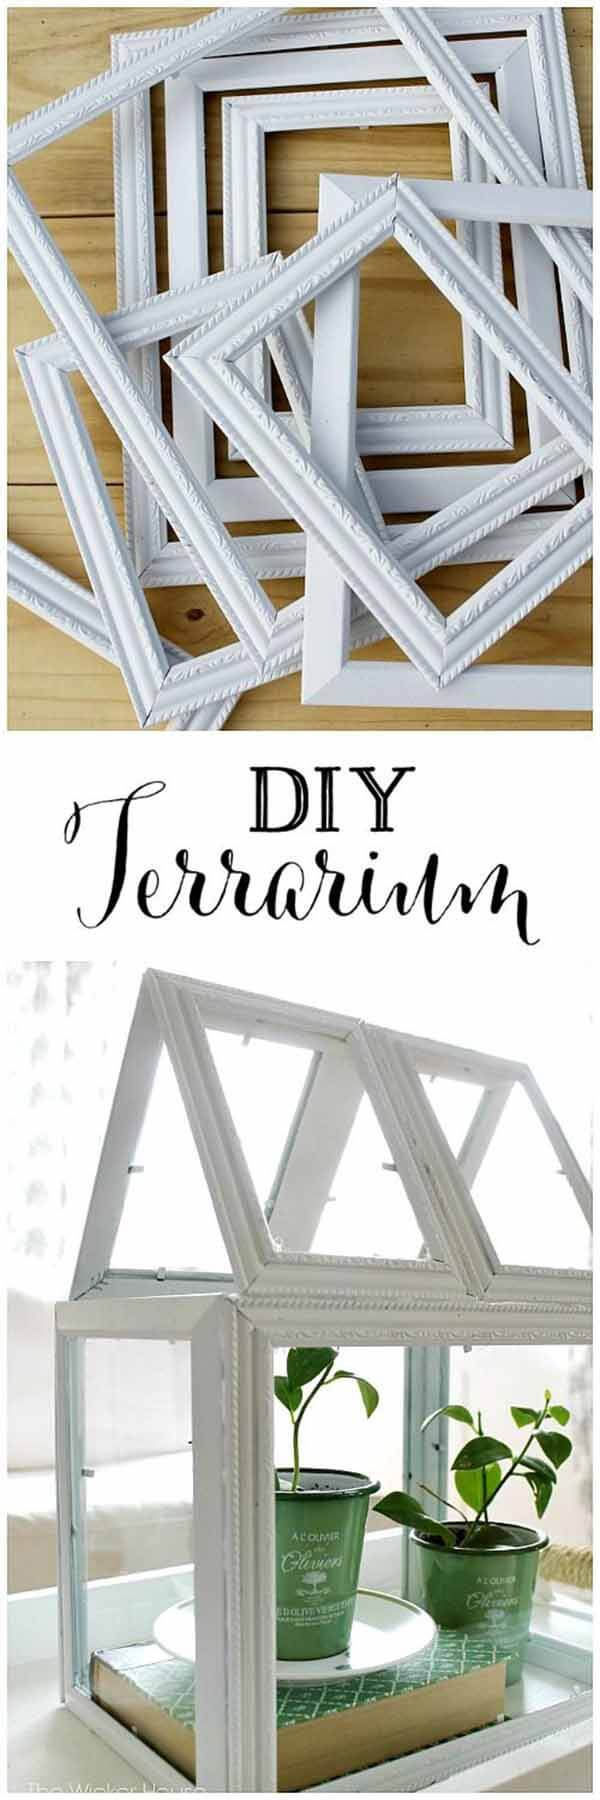 A Small, Framed Green House Terrarium | Build a beautiful outdoor greenhouse | Creative Greenhouse DIY plans